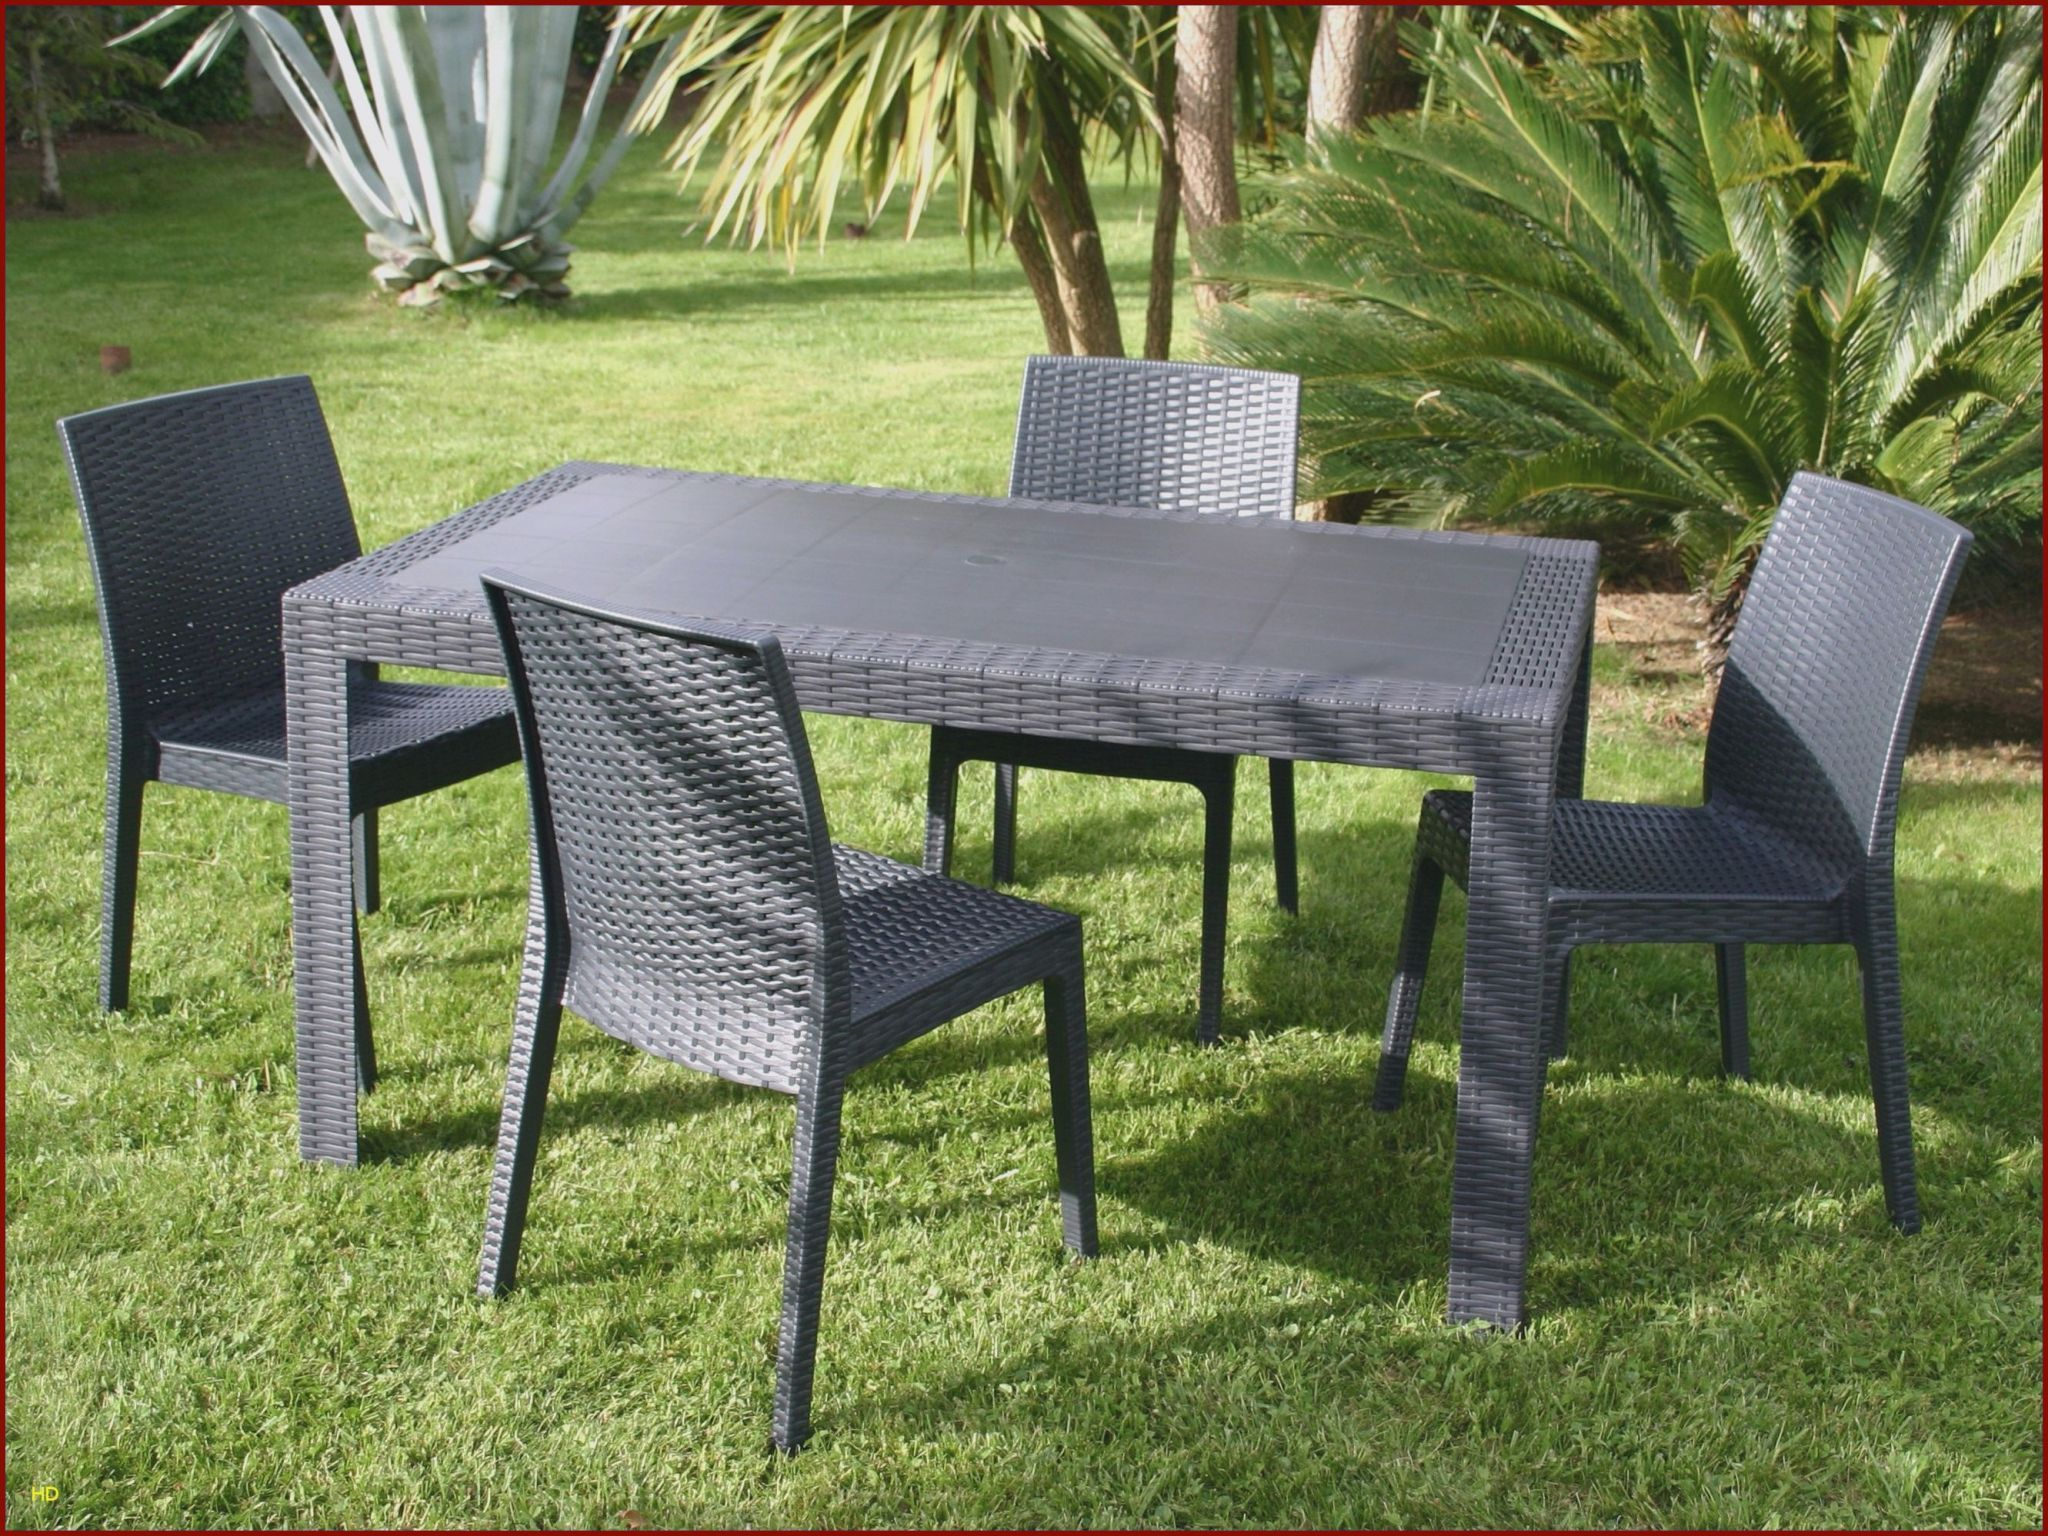 Meubles De Jardin Hesperides Charmant Chaises Luxe Chaise Ice 0d Table Jardin Resine Lovely